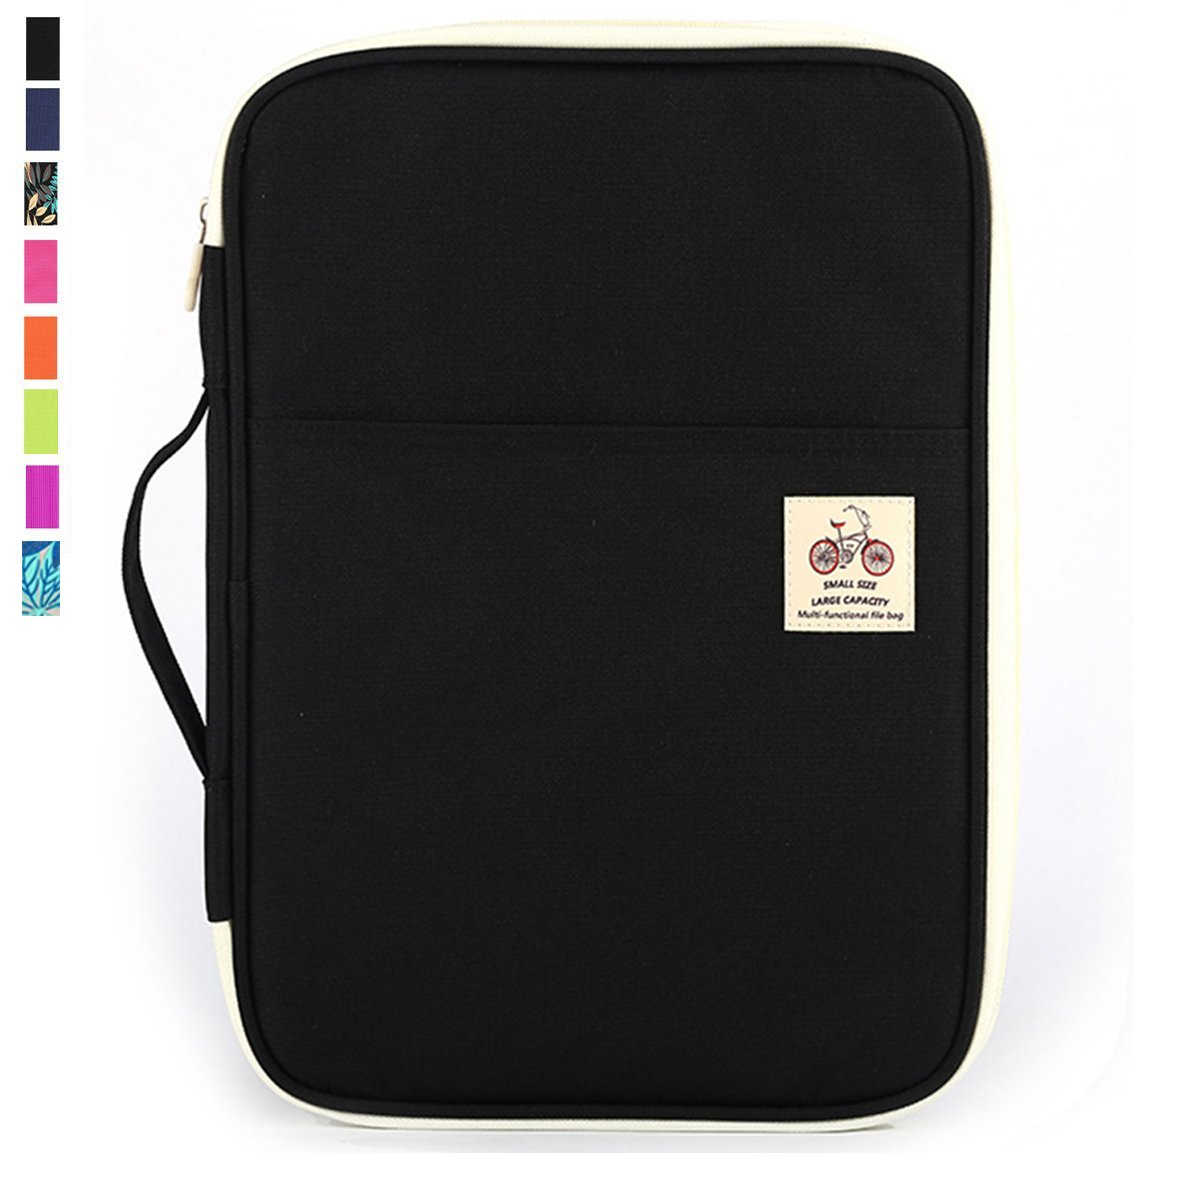 JAKAGO Travel Portfolio Waterproof Oxford Fabric Carrying Case Pad Holder Sleeves Business Portfolio Resume Padfolio Passport & Travel Document Holder and Organizer with Zipper Closure (Black)